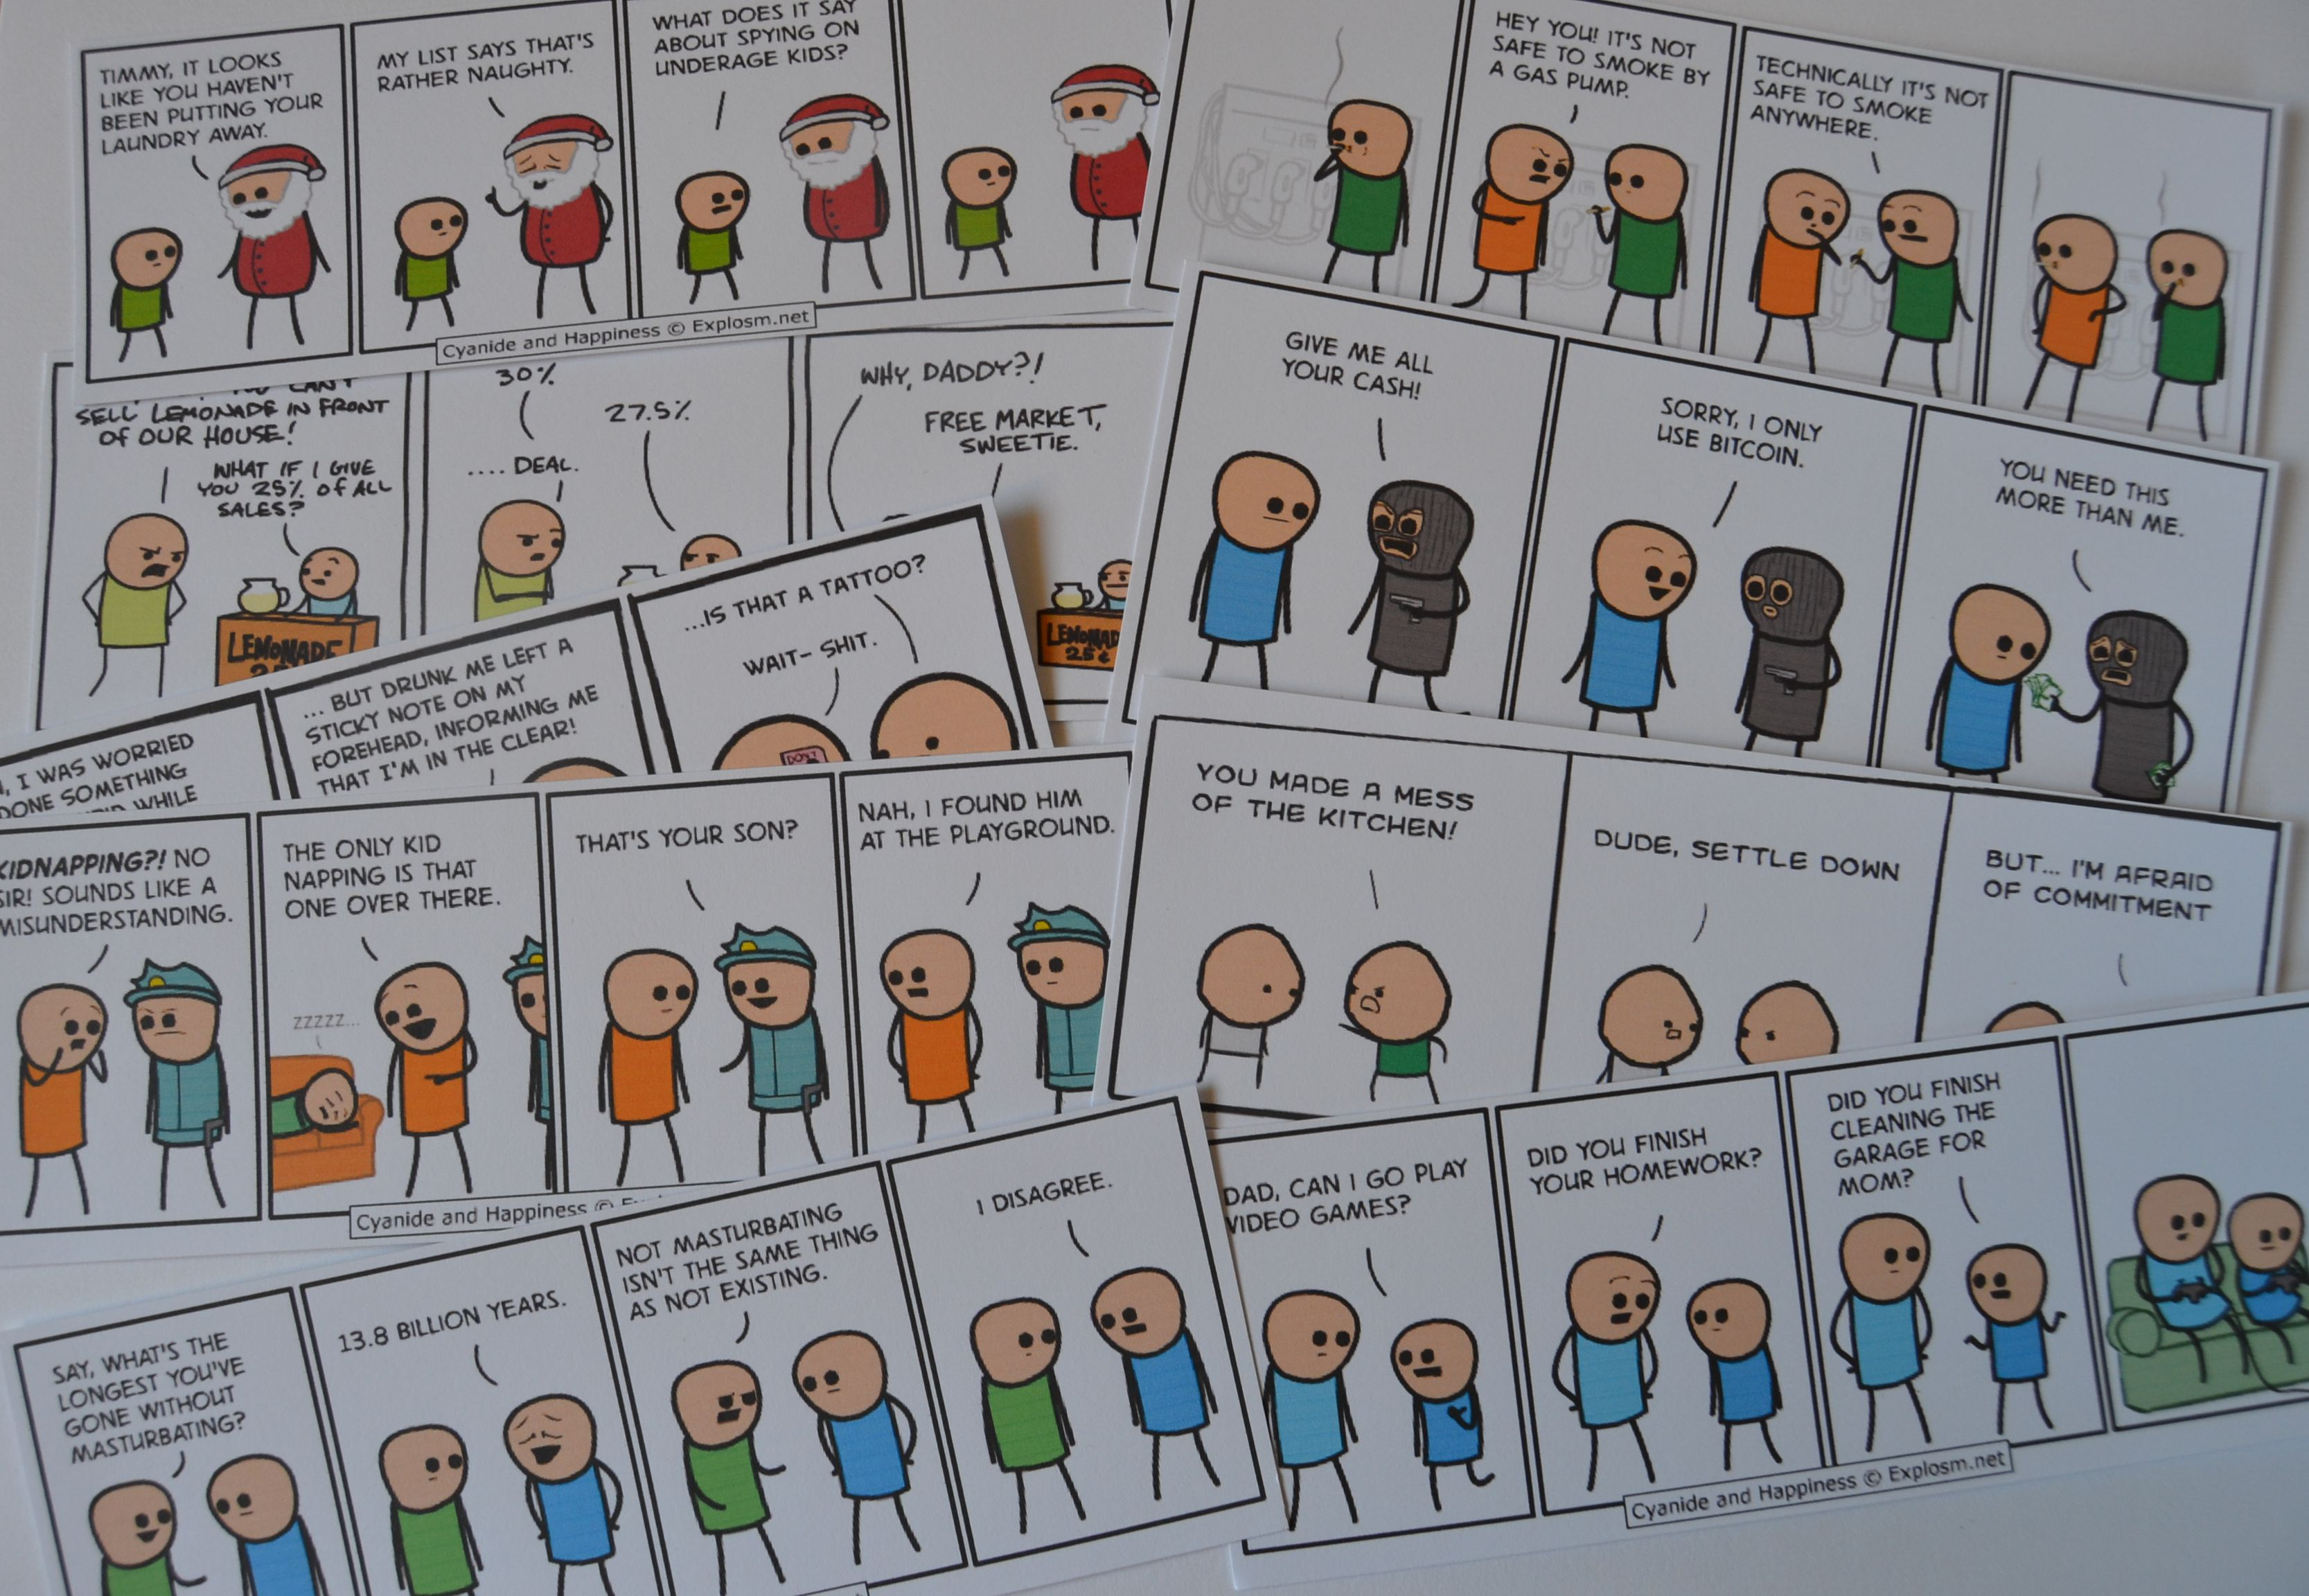 komiksy Cyanide and Happiness